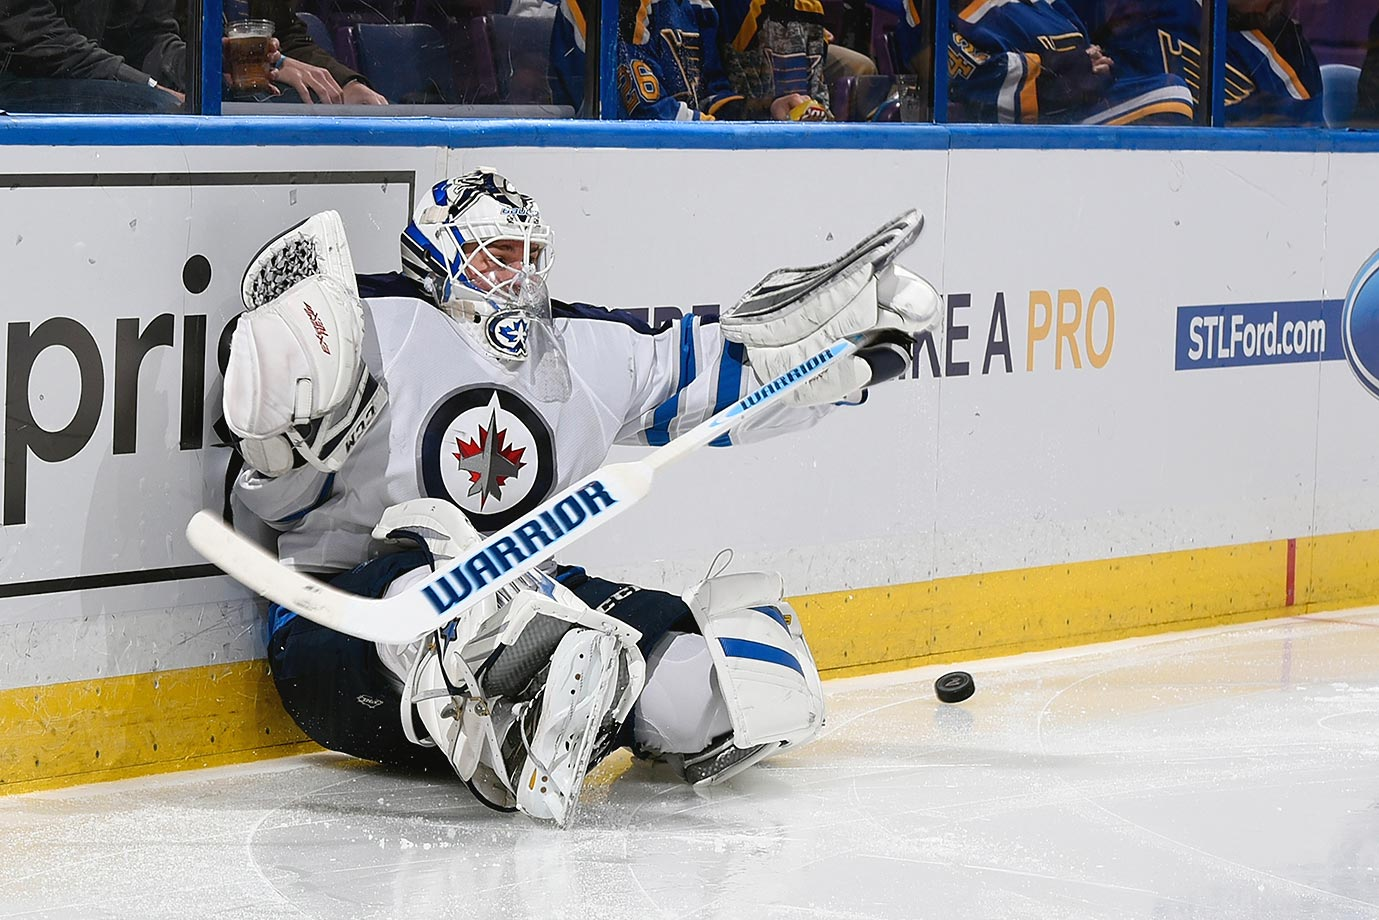 Michael Hutchinson of the Winnipeg Jets falls to the ice chasing a puck in a game against the St. Louis Blues.